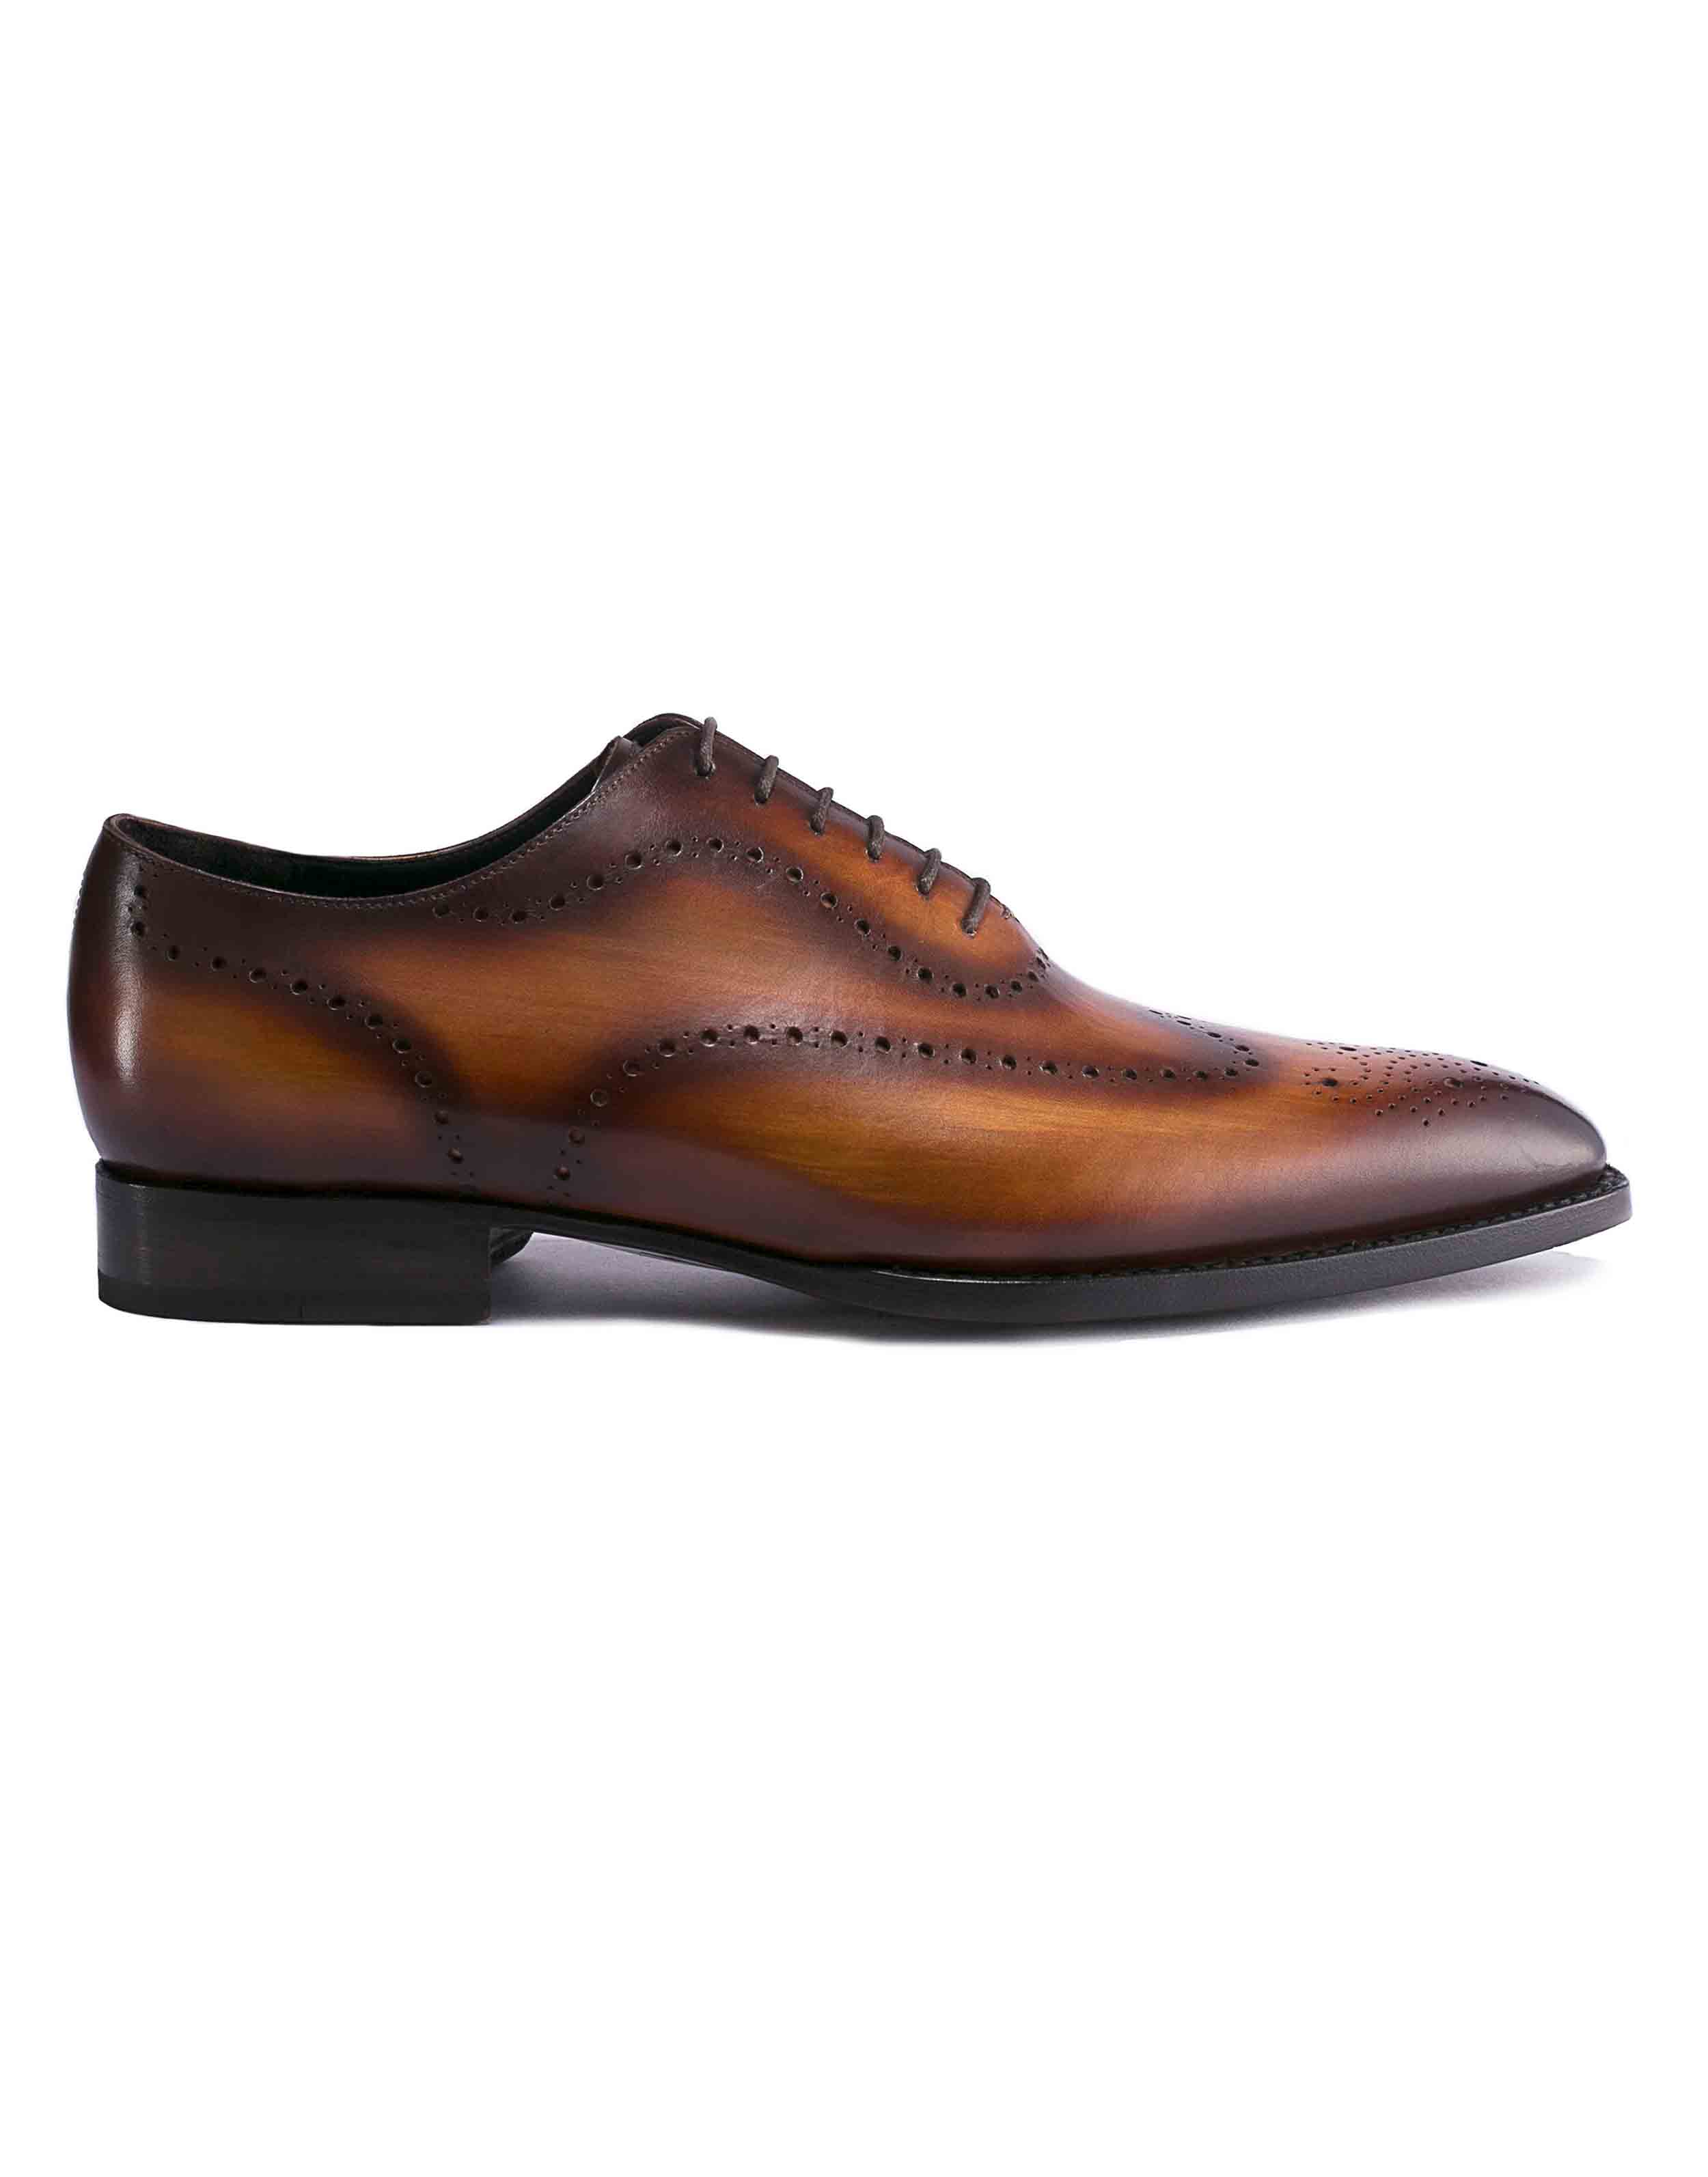 DARK BROWN PATINA BROGUE OXFORD1